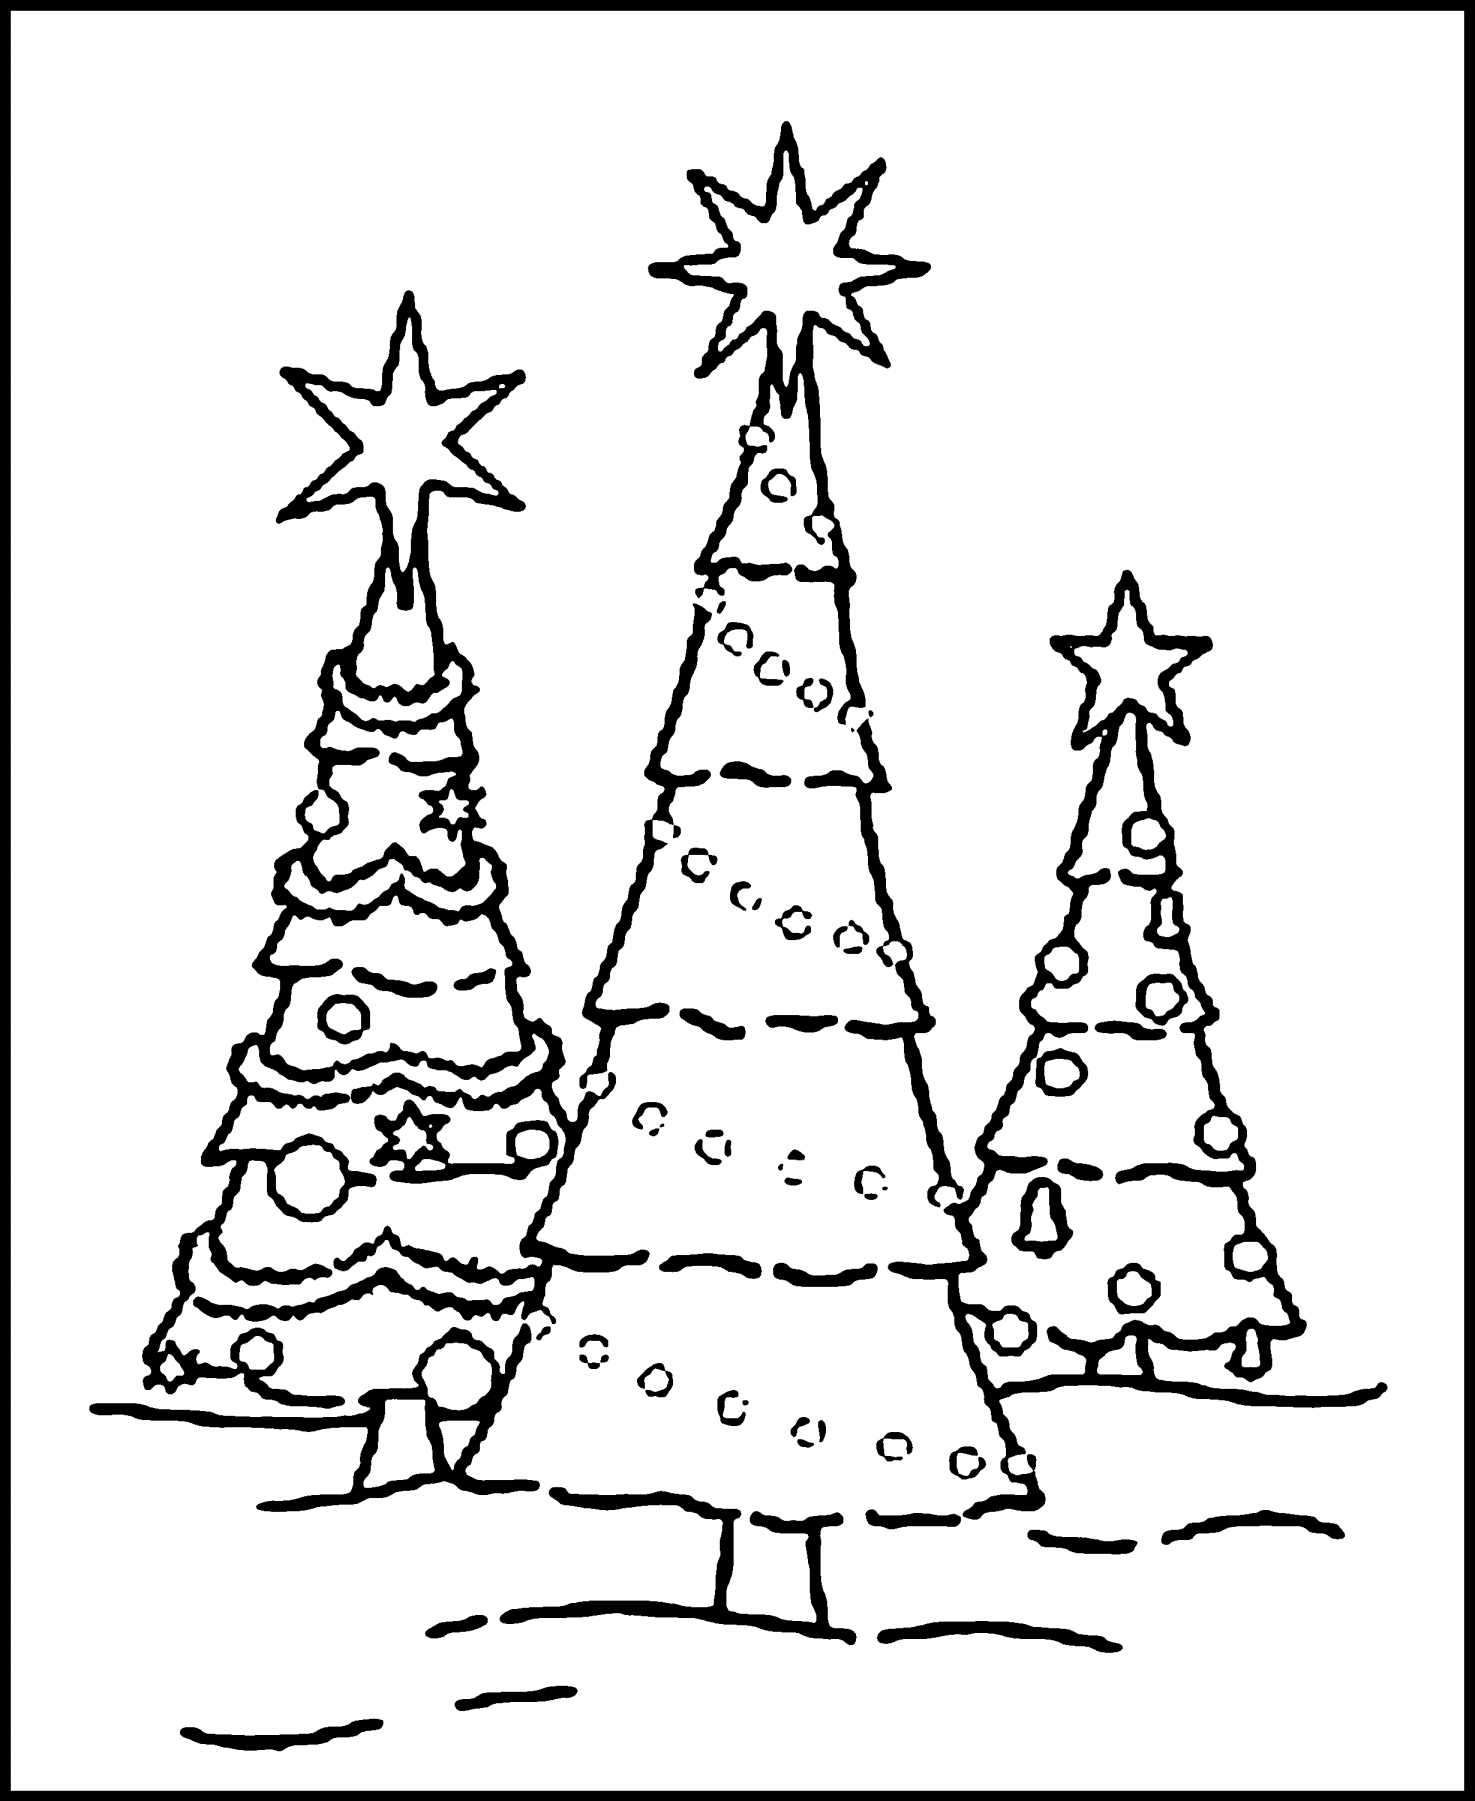 Christmas Tree Coloring In With Santa Themed Trees Good Claus